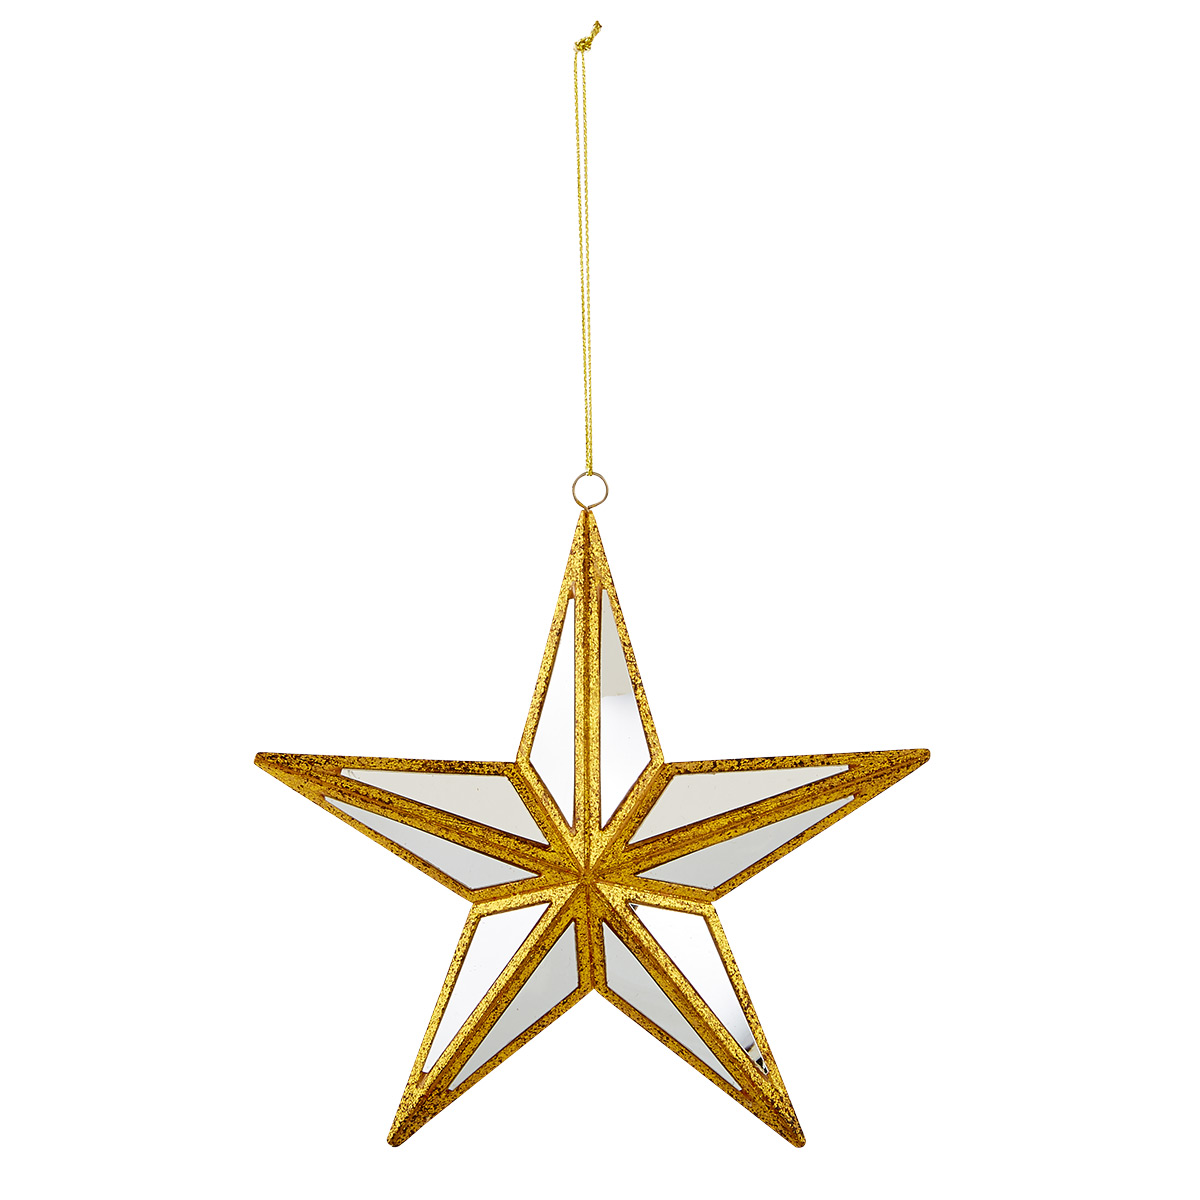 Mirrored Star Tie-On Ornament